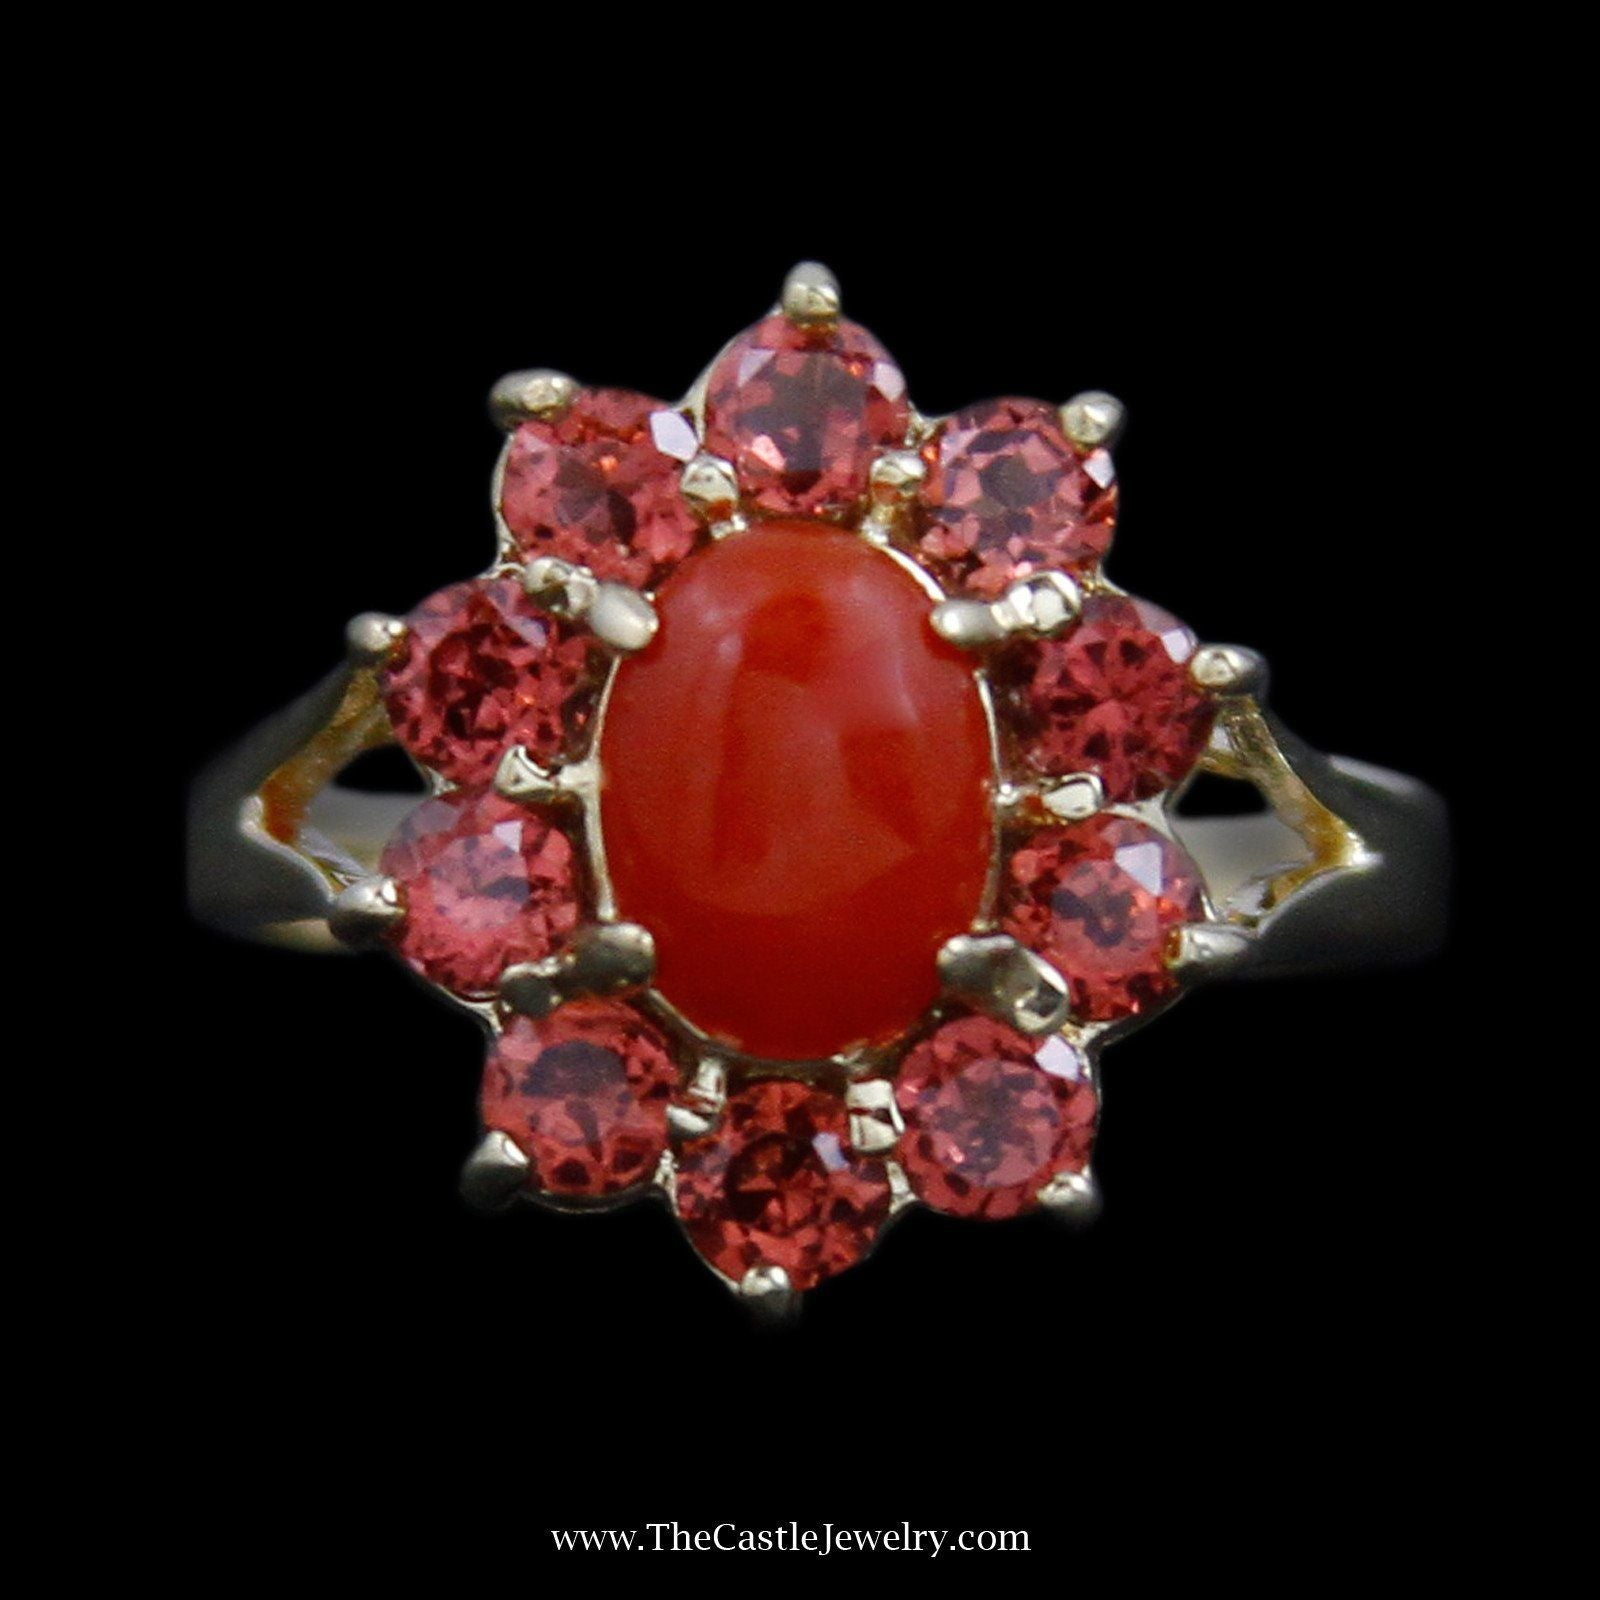 Lovely Oval Cabochon Carnelian Ring with Round Garnet Bezel & Split Design Sides